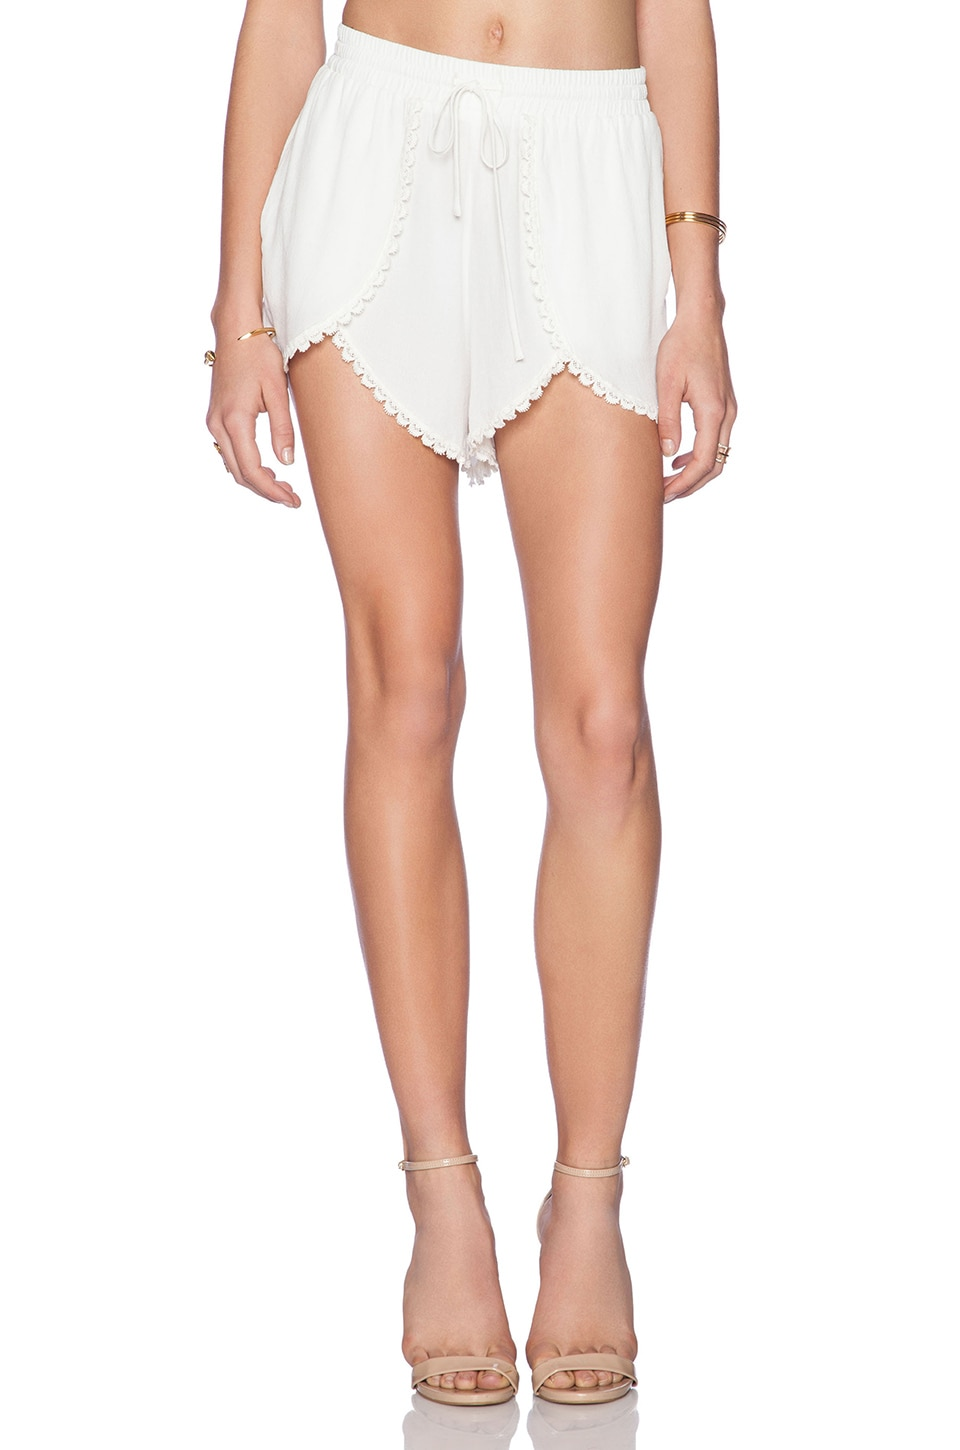 Lovers + Friends Mariposa Shorts in Ivory